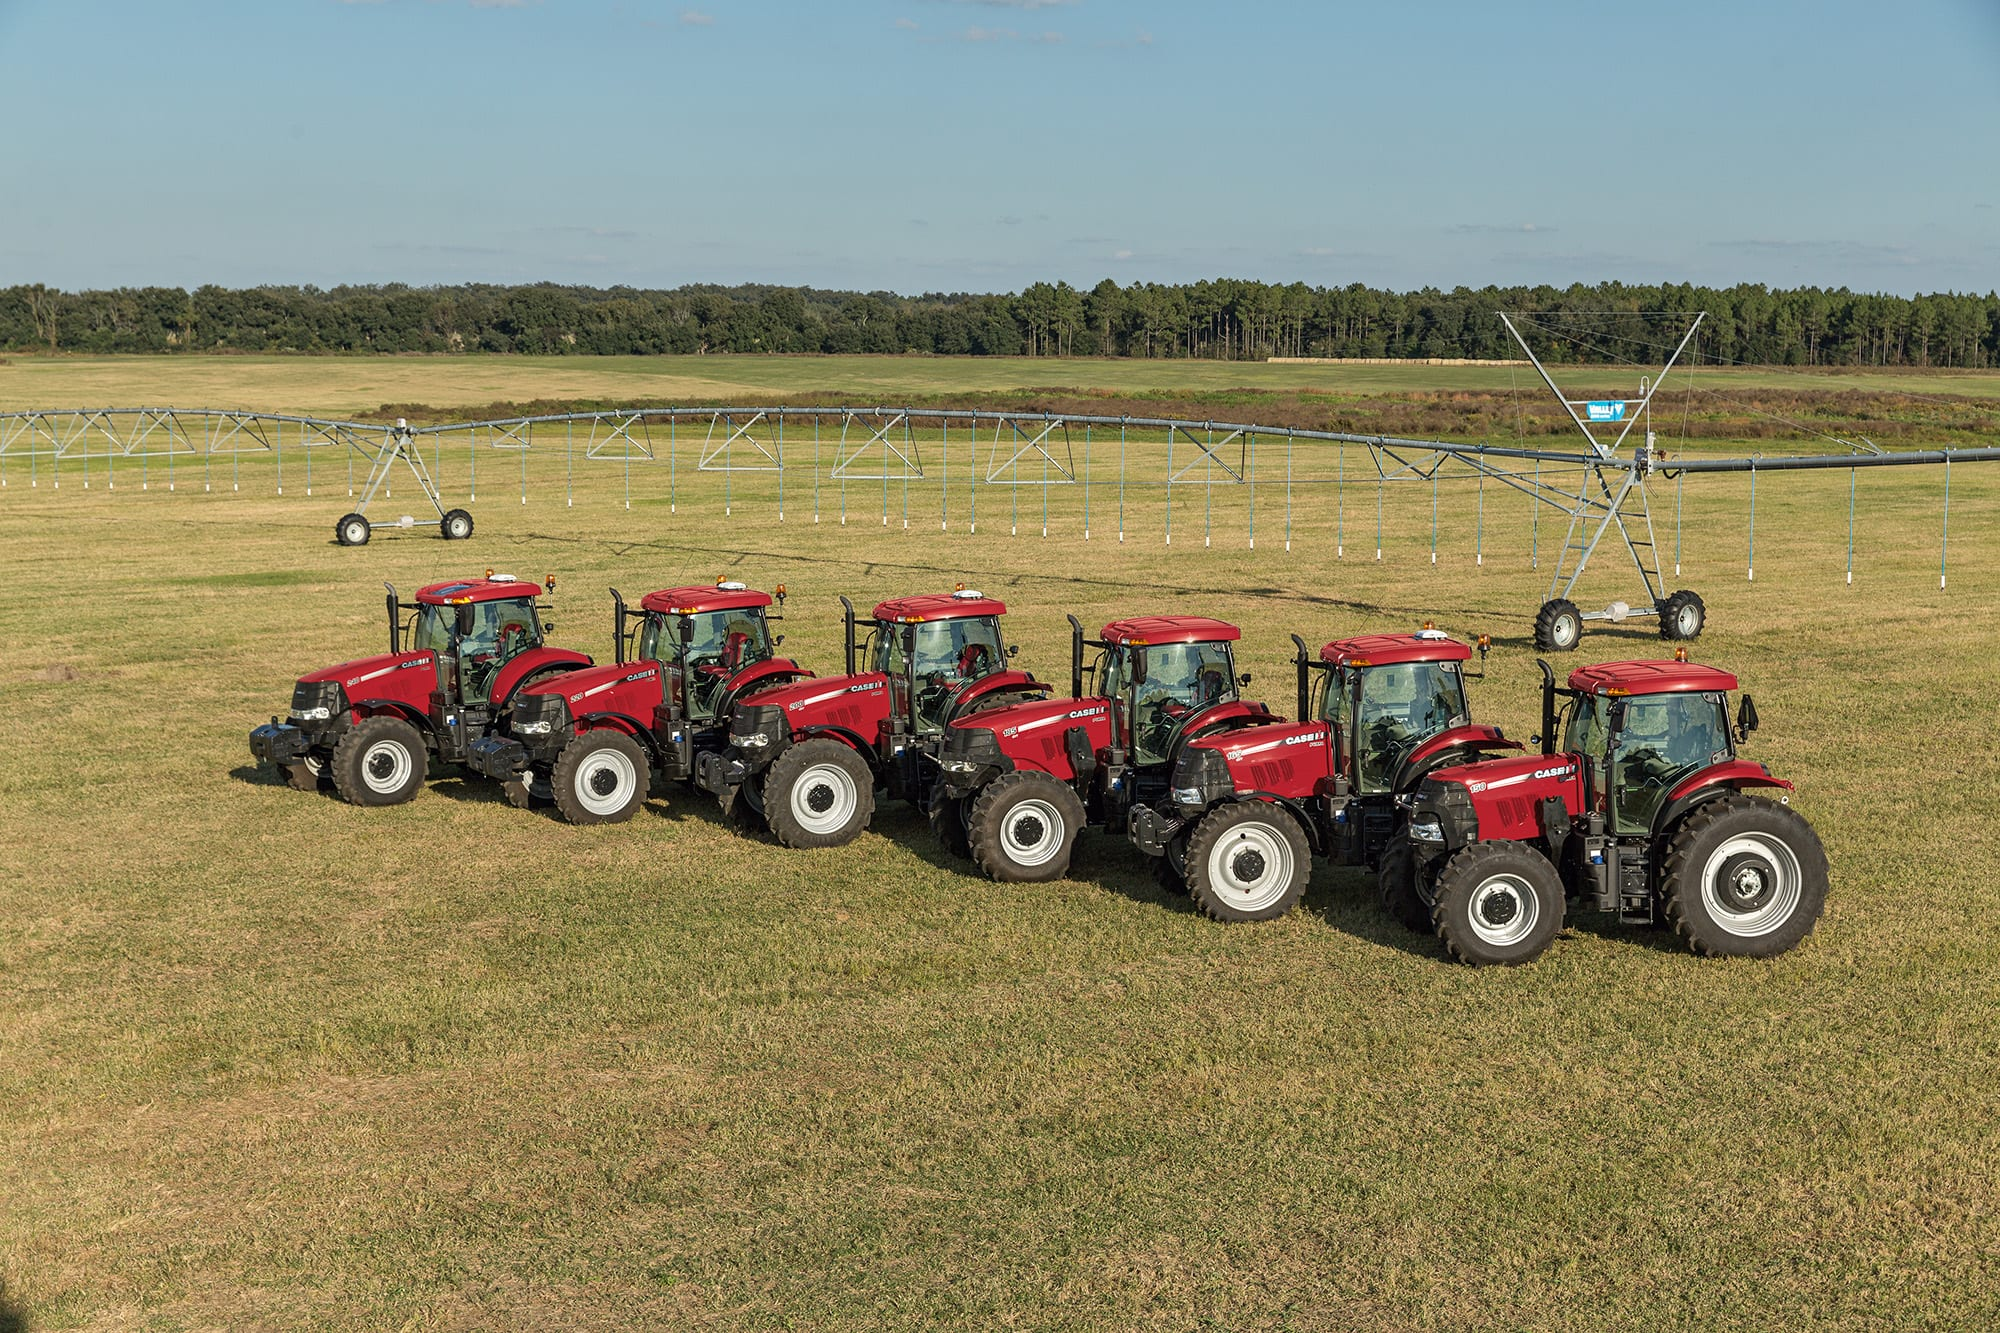 Power, Performance, and Versatility in a Mid-Size Tractor.